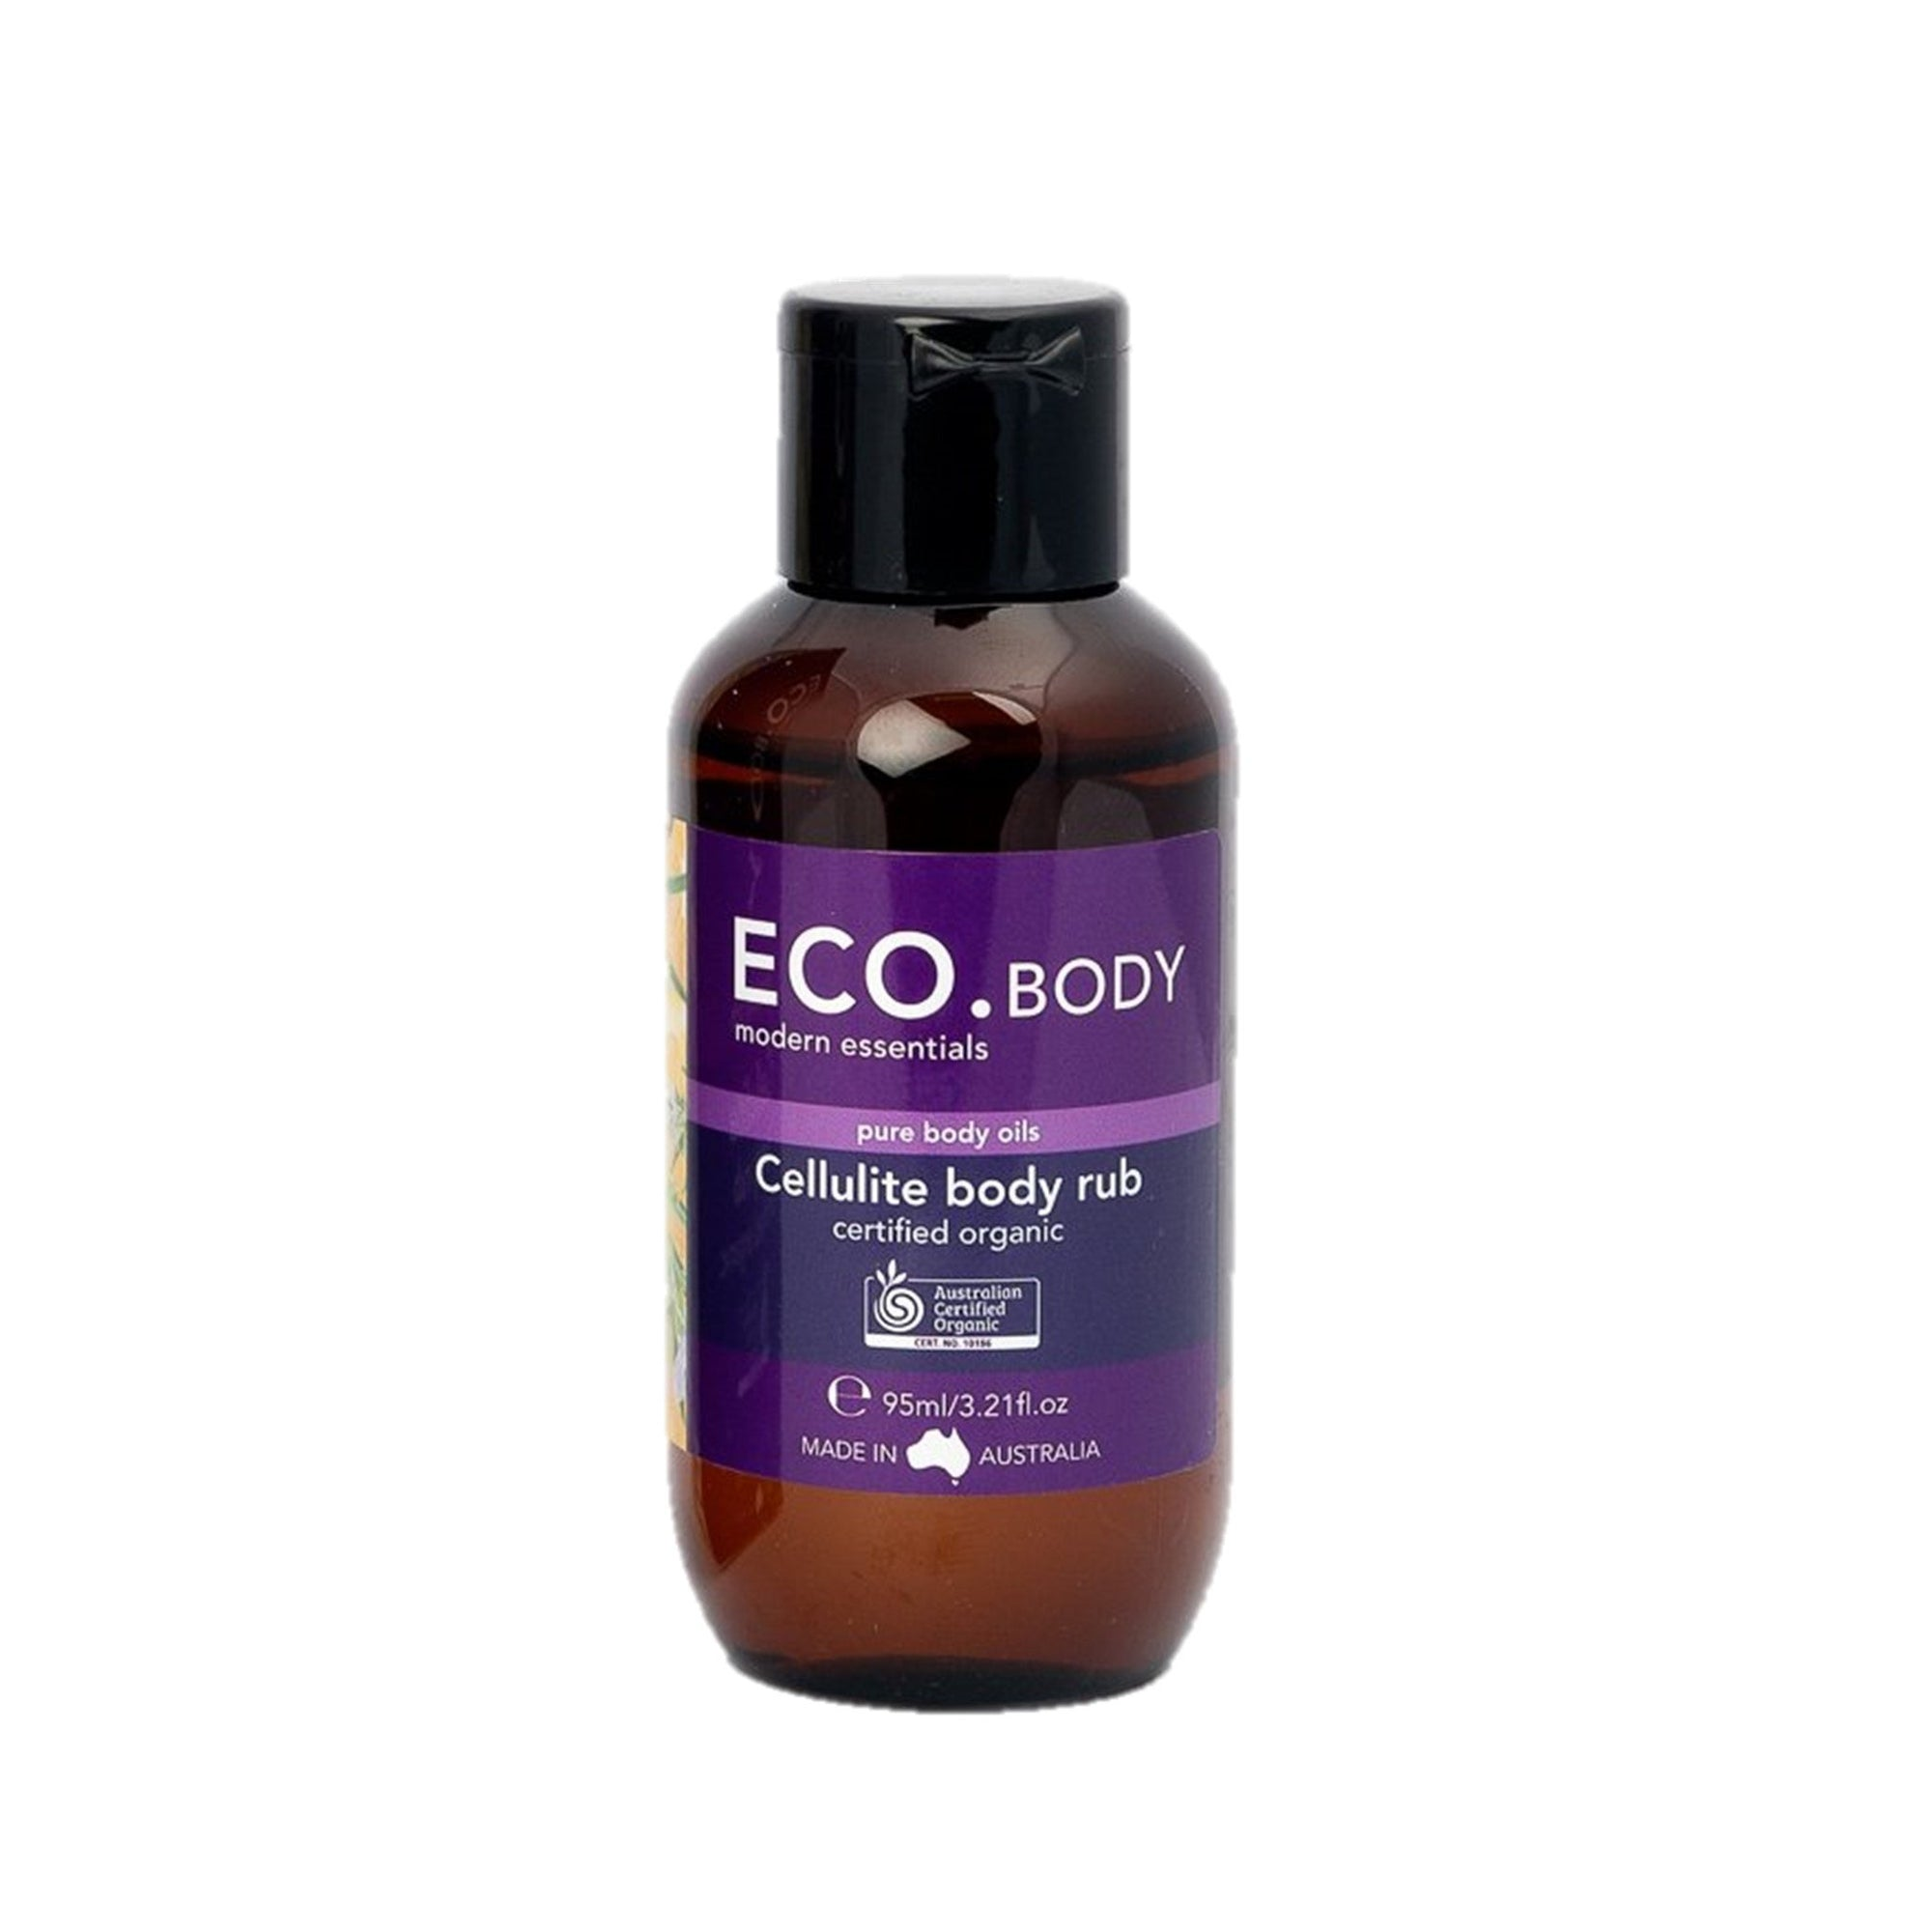 ECO Organic Cellulite Body Rub 95ml